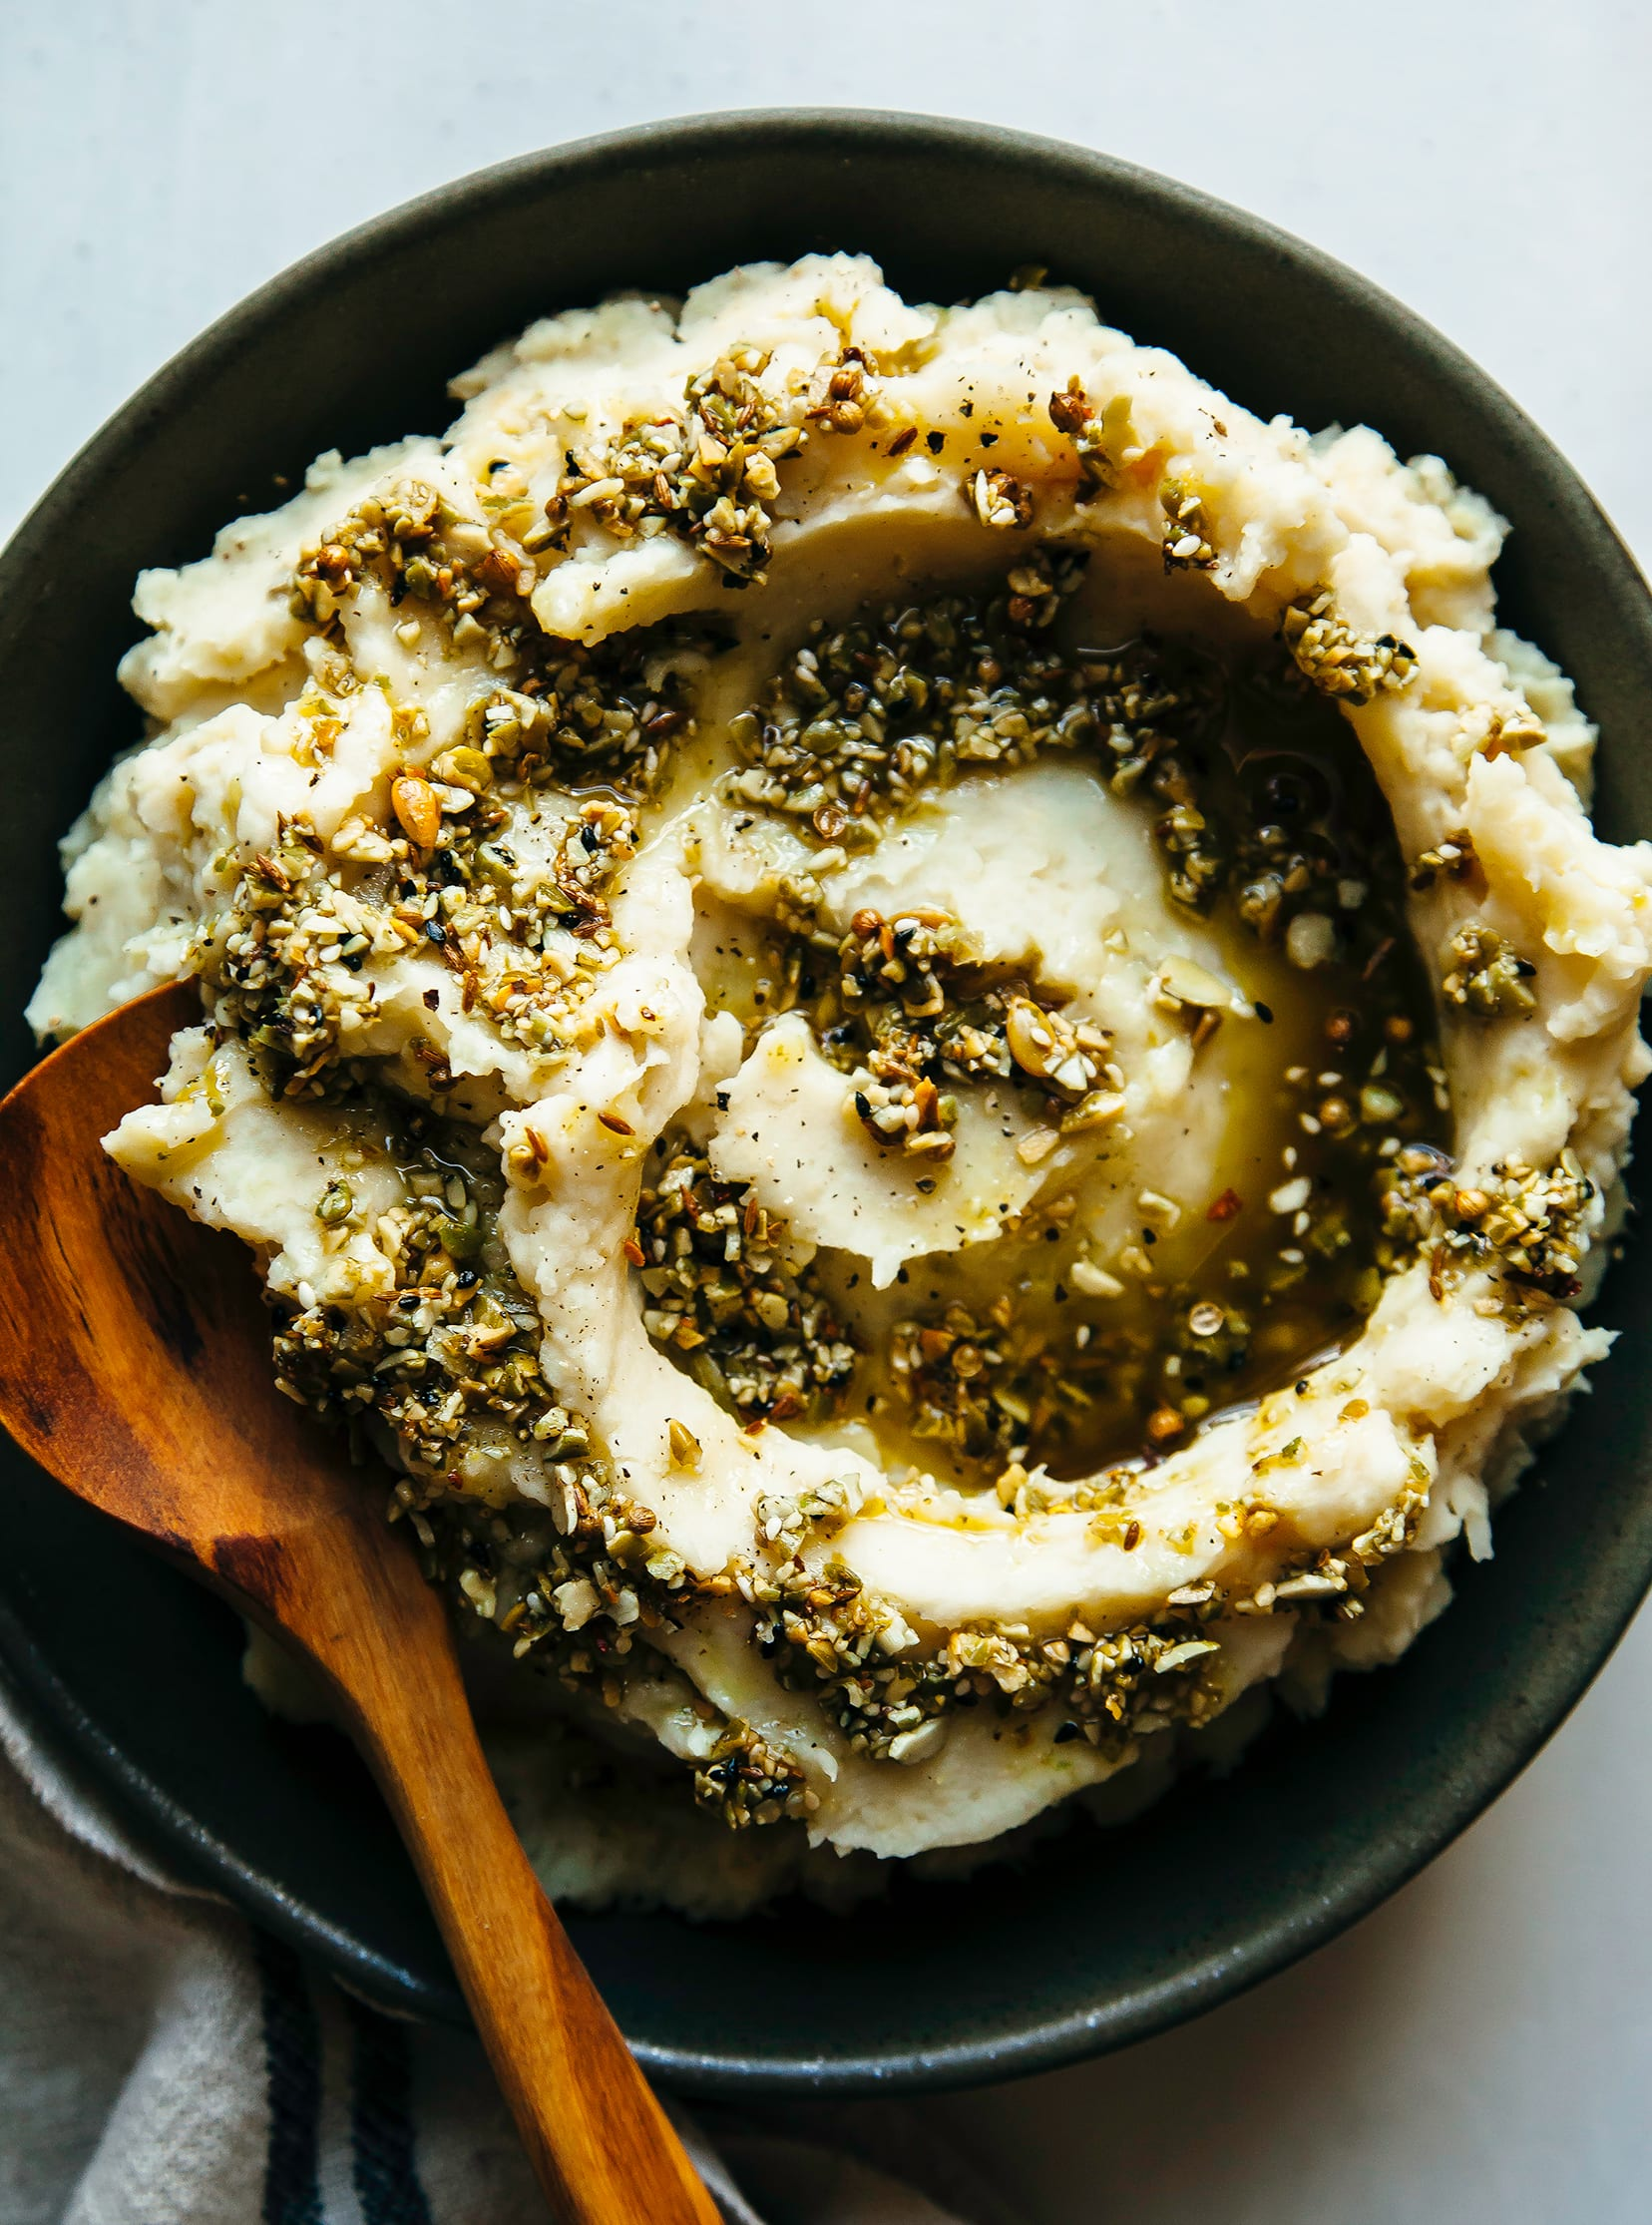 HARVEST VEGETABLE MASH WITH ROASTED GARLIC, HORSERADISH & FRID DUKKAH - The First Mess